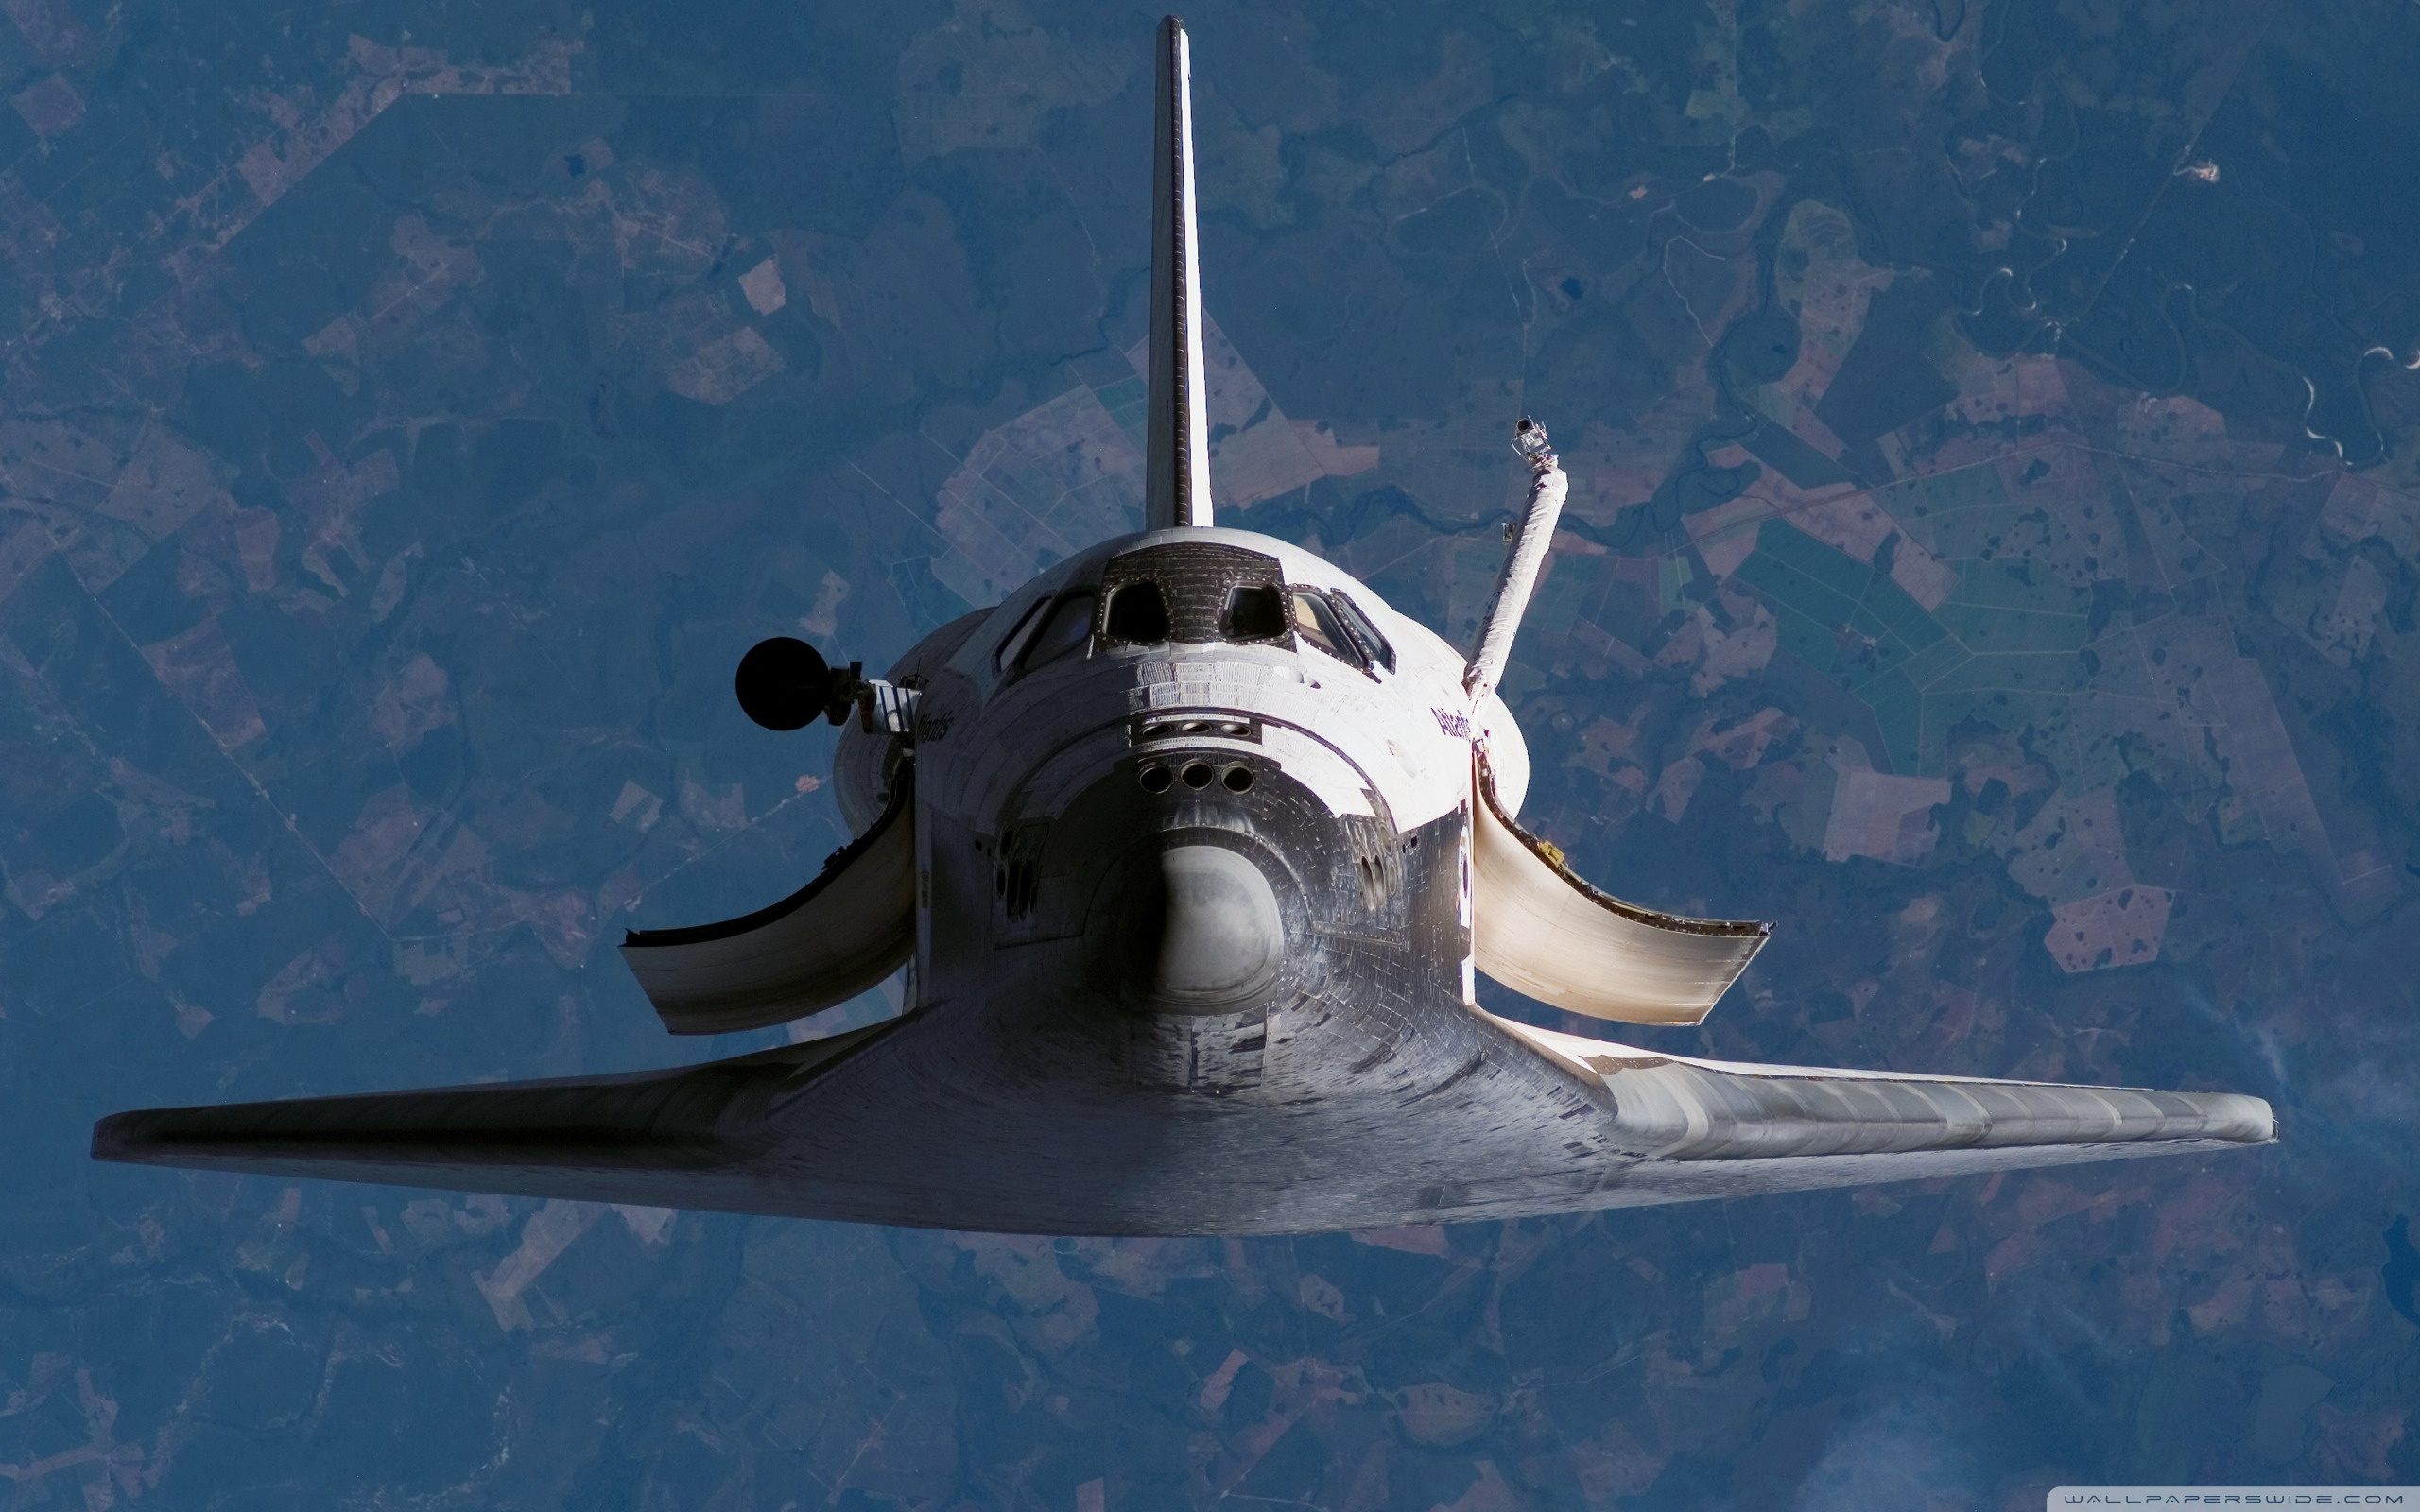 2560x1600 - Space Shuttle atlantis Wallpapers 6